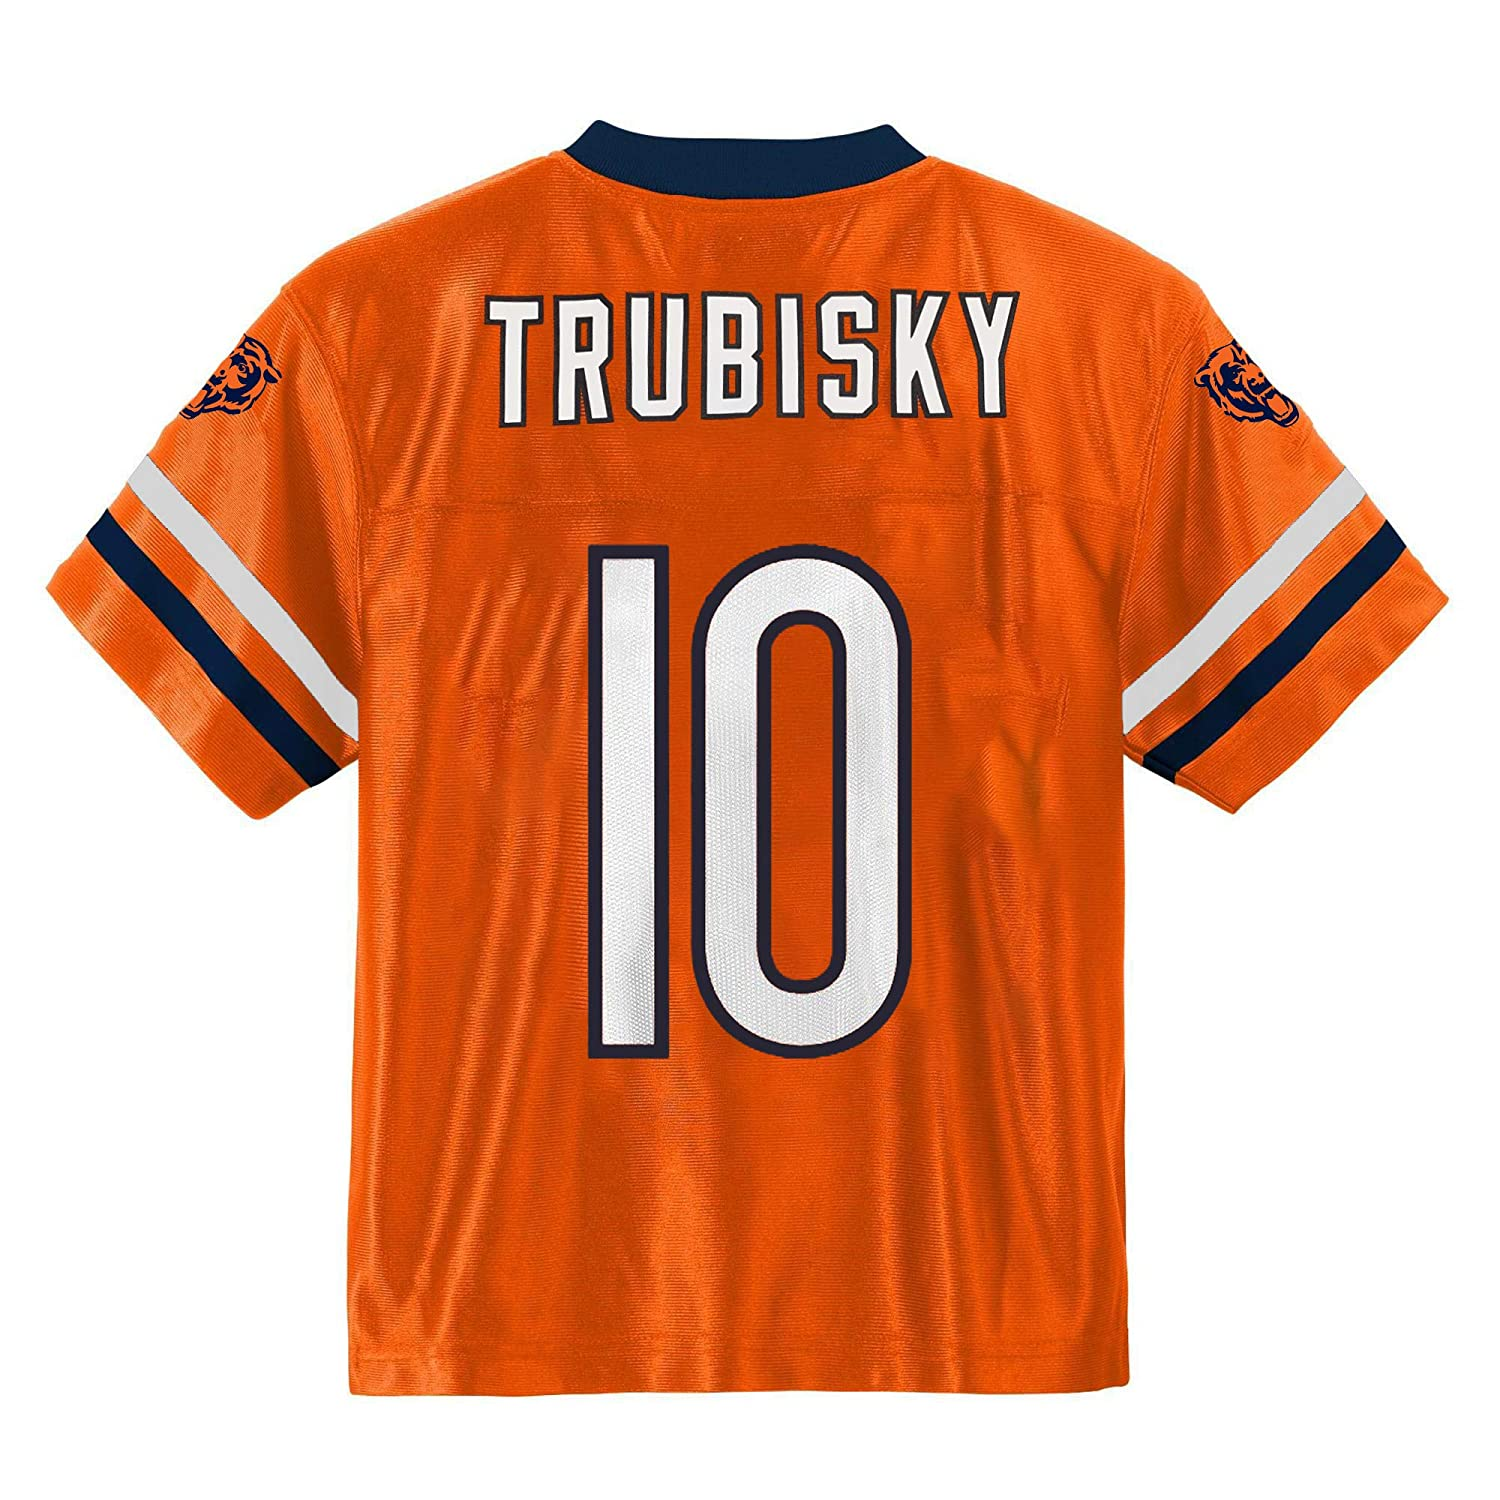 new arrival e1895 3d8ff Amazon.com : Outerstuff Mitchell Trubisky Chicago Bears #10 ...